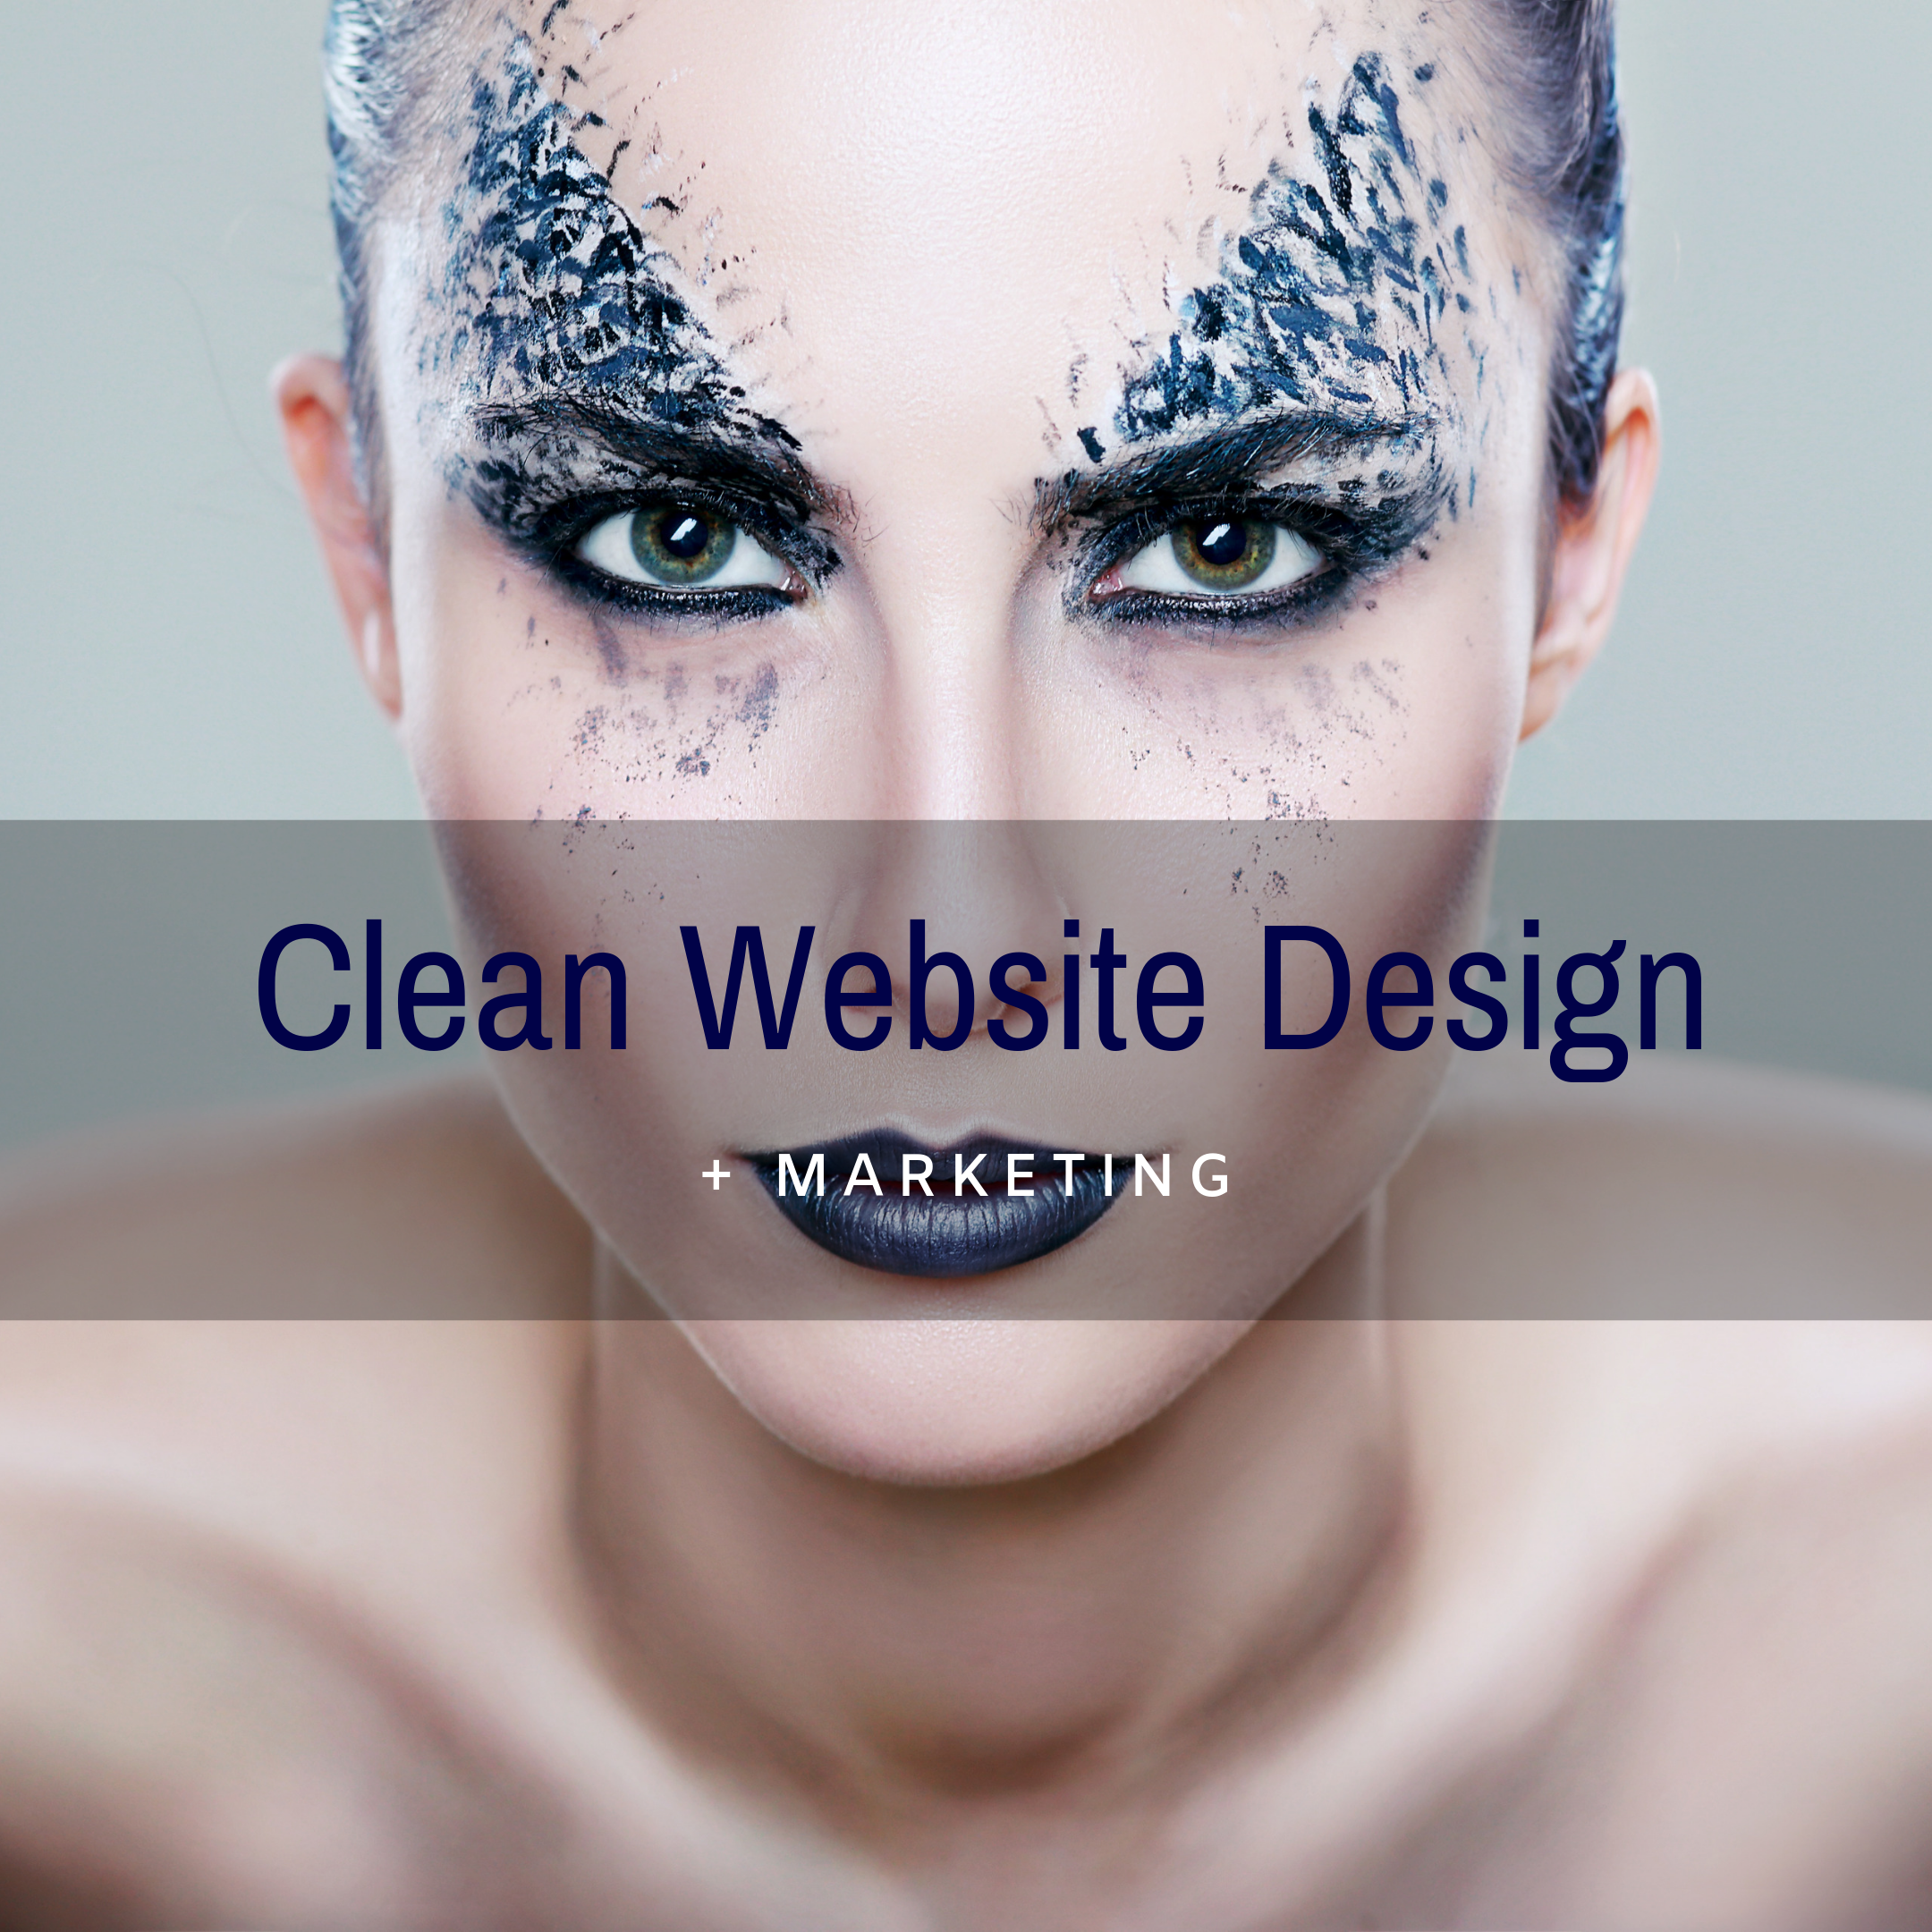 clean-website-design5.png